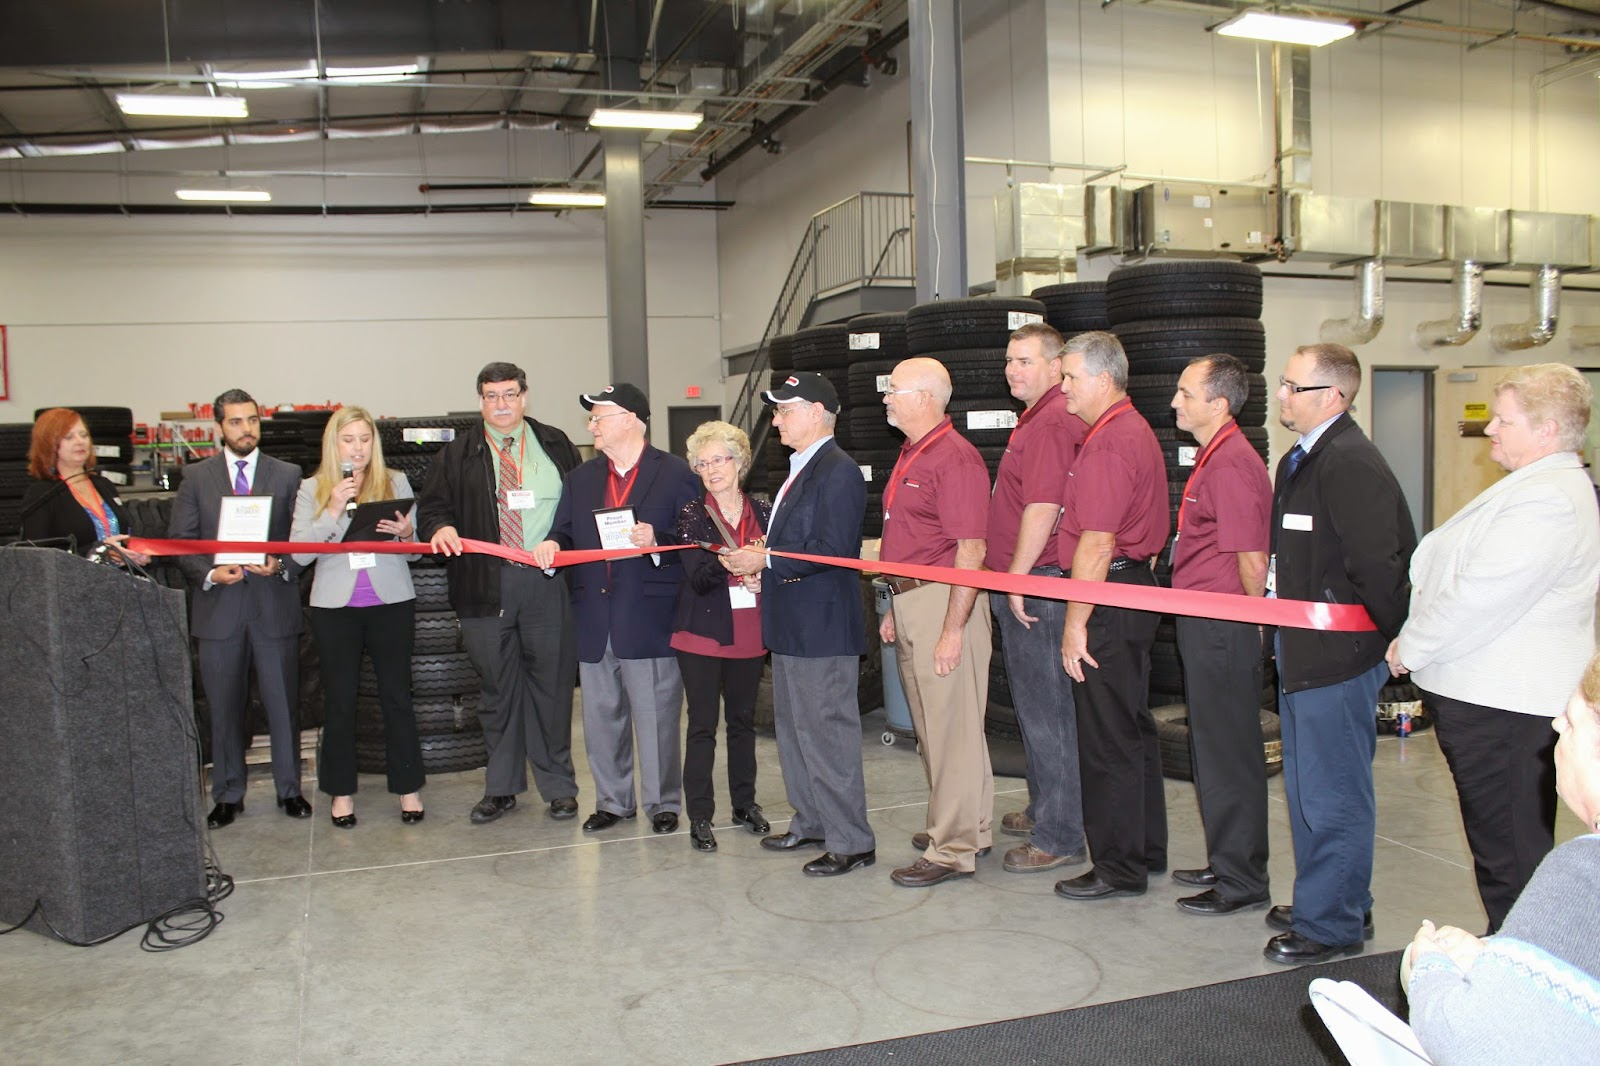 Purcell Tire would like to thank all those that attended our ribbon cutting event.  Over 400 people attended even with pouring rain.  We know that this is a great sign of things to come.  We look forward to serving the Tucson market with the best and brightest facility, equipment, products and most important people.